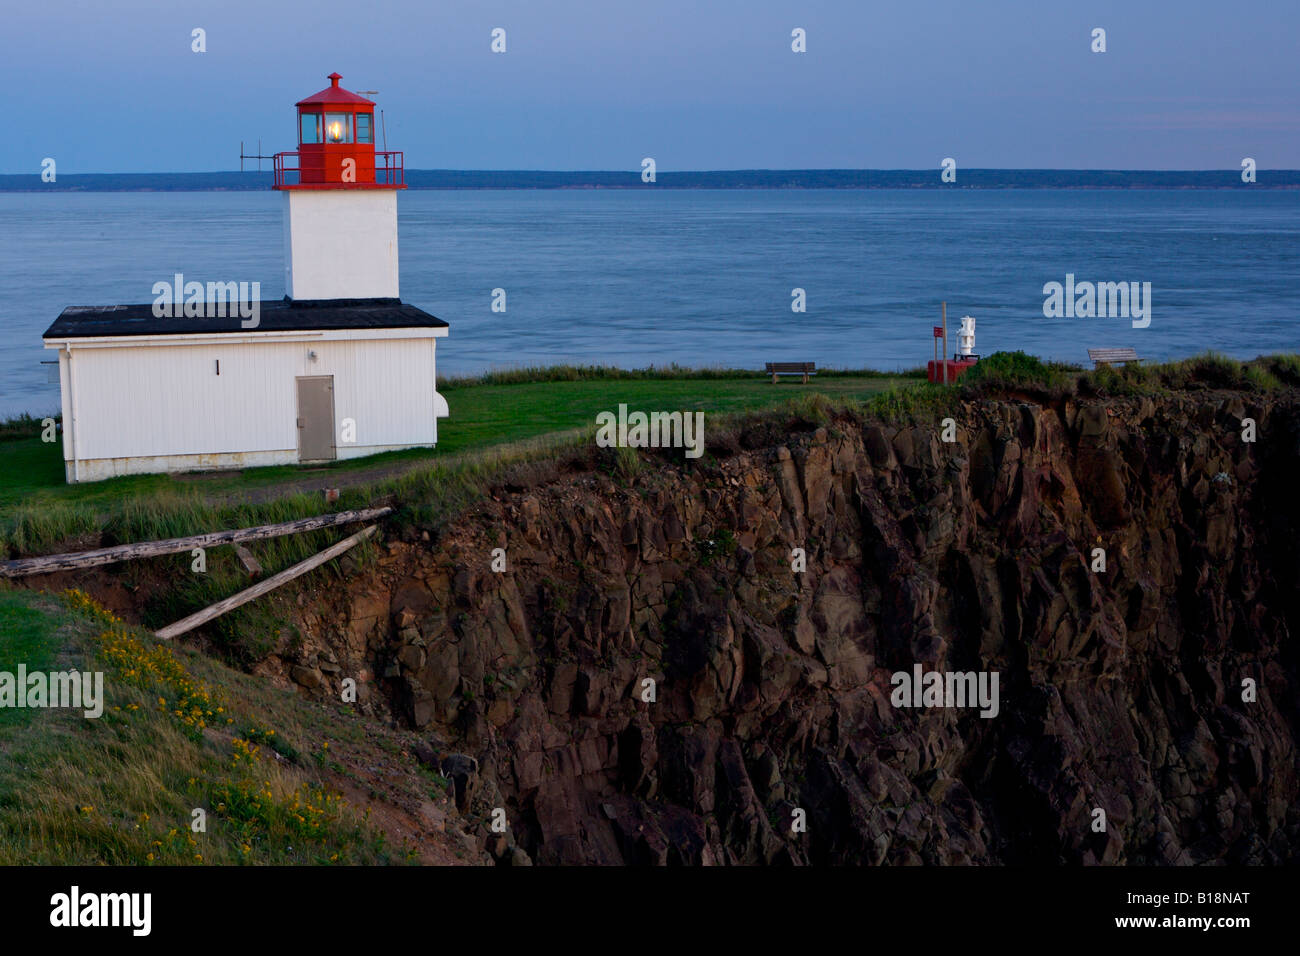 Cape d'Or Lighthouse at blue hour, Cape d'Or, Cape Chignecto, Bay of Fundy, Fundy Shore Ecotour, Glooscap - Stock Image